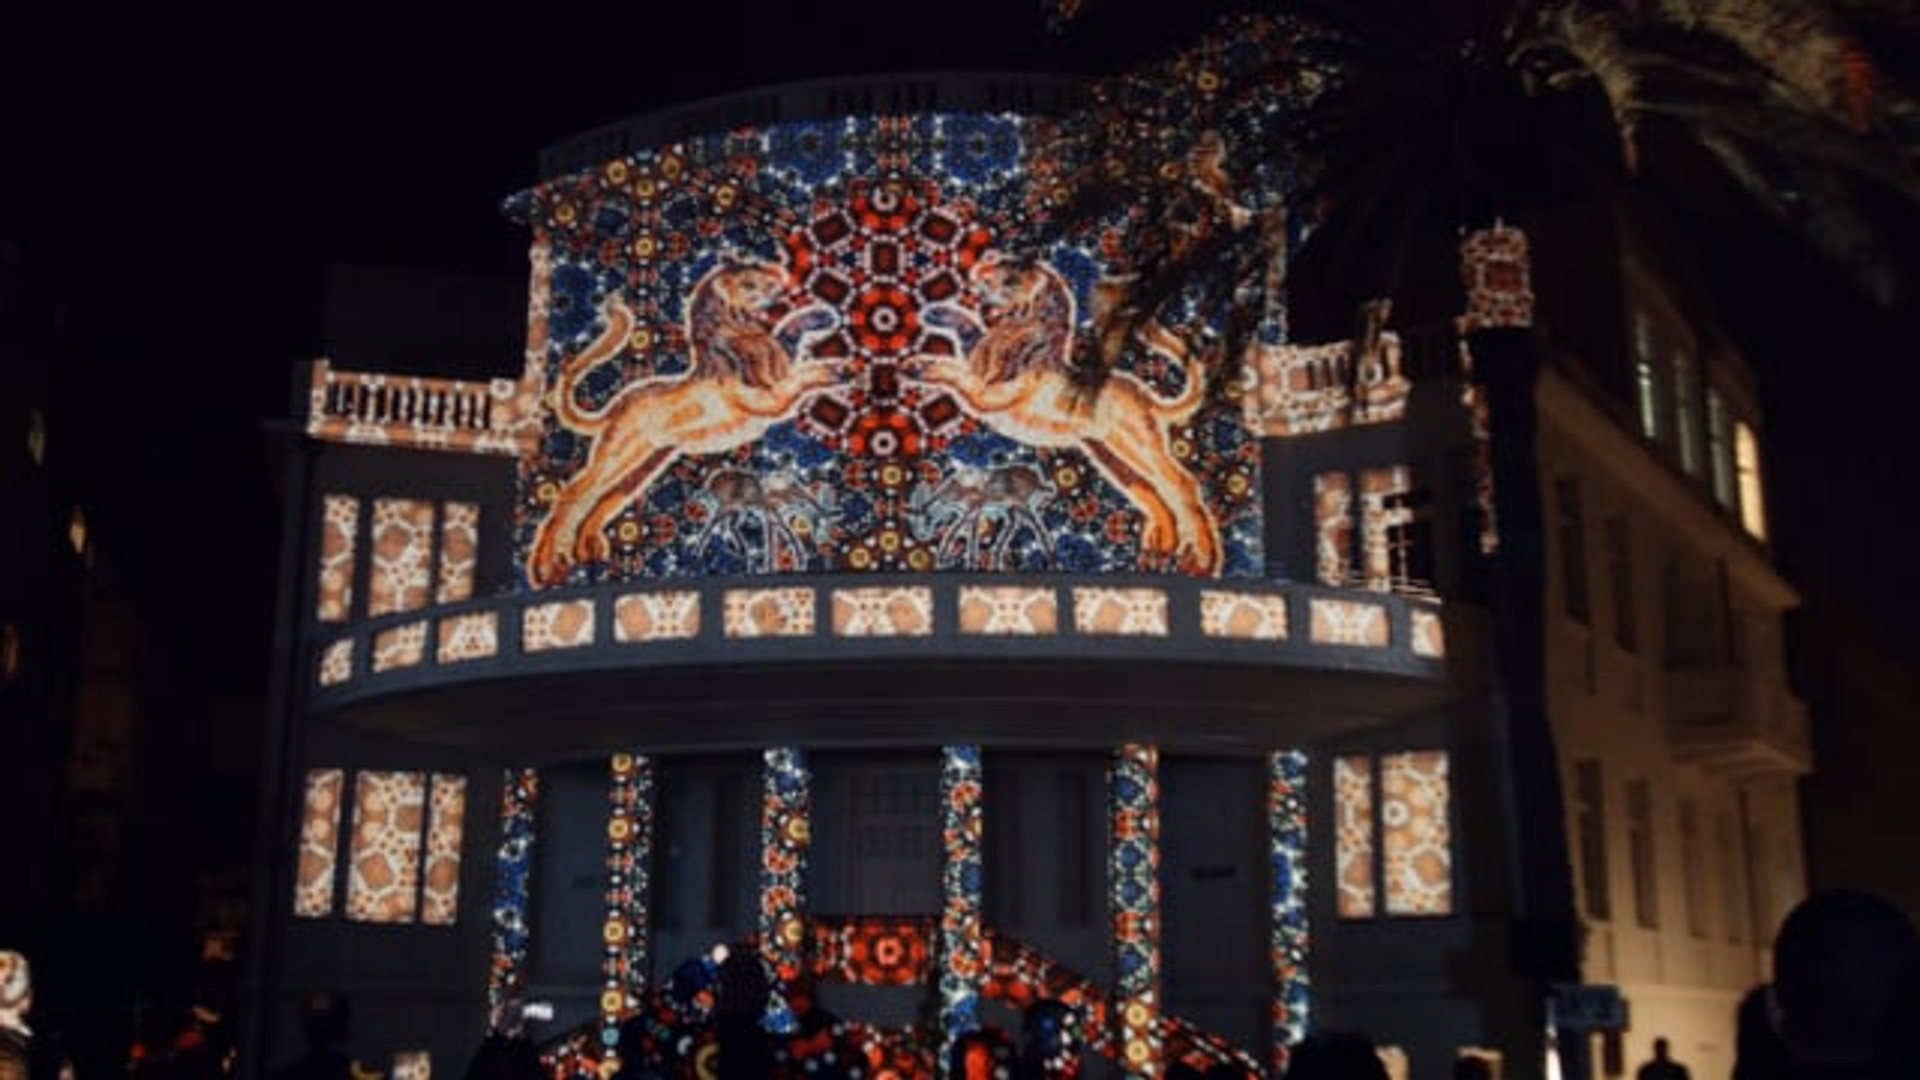 Bialik Sq. Projection Mapping